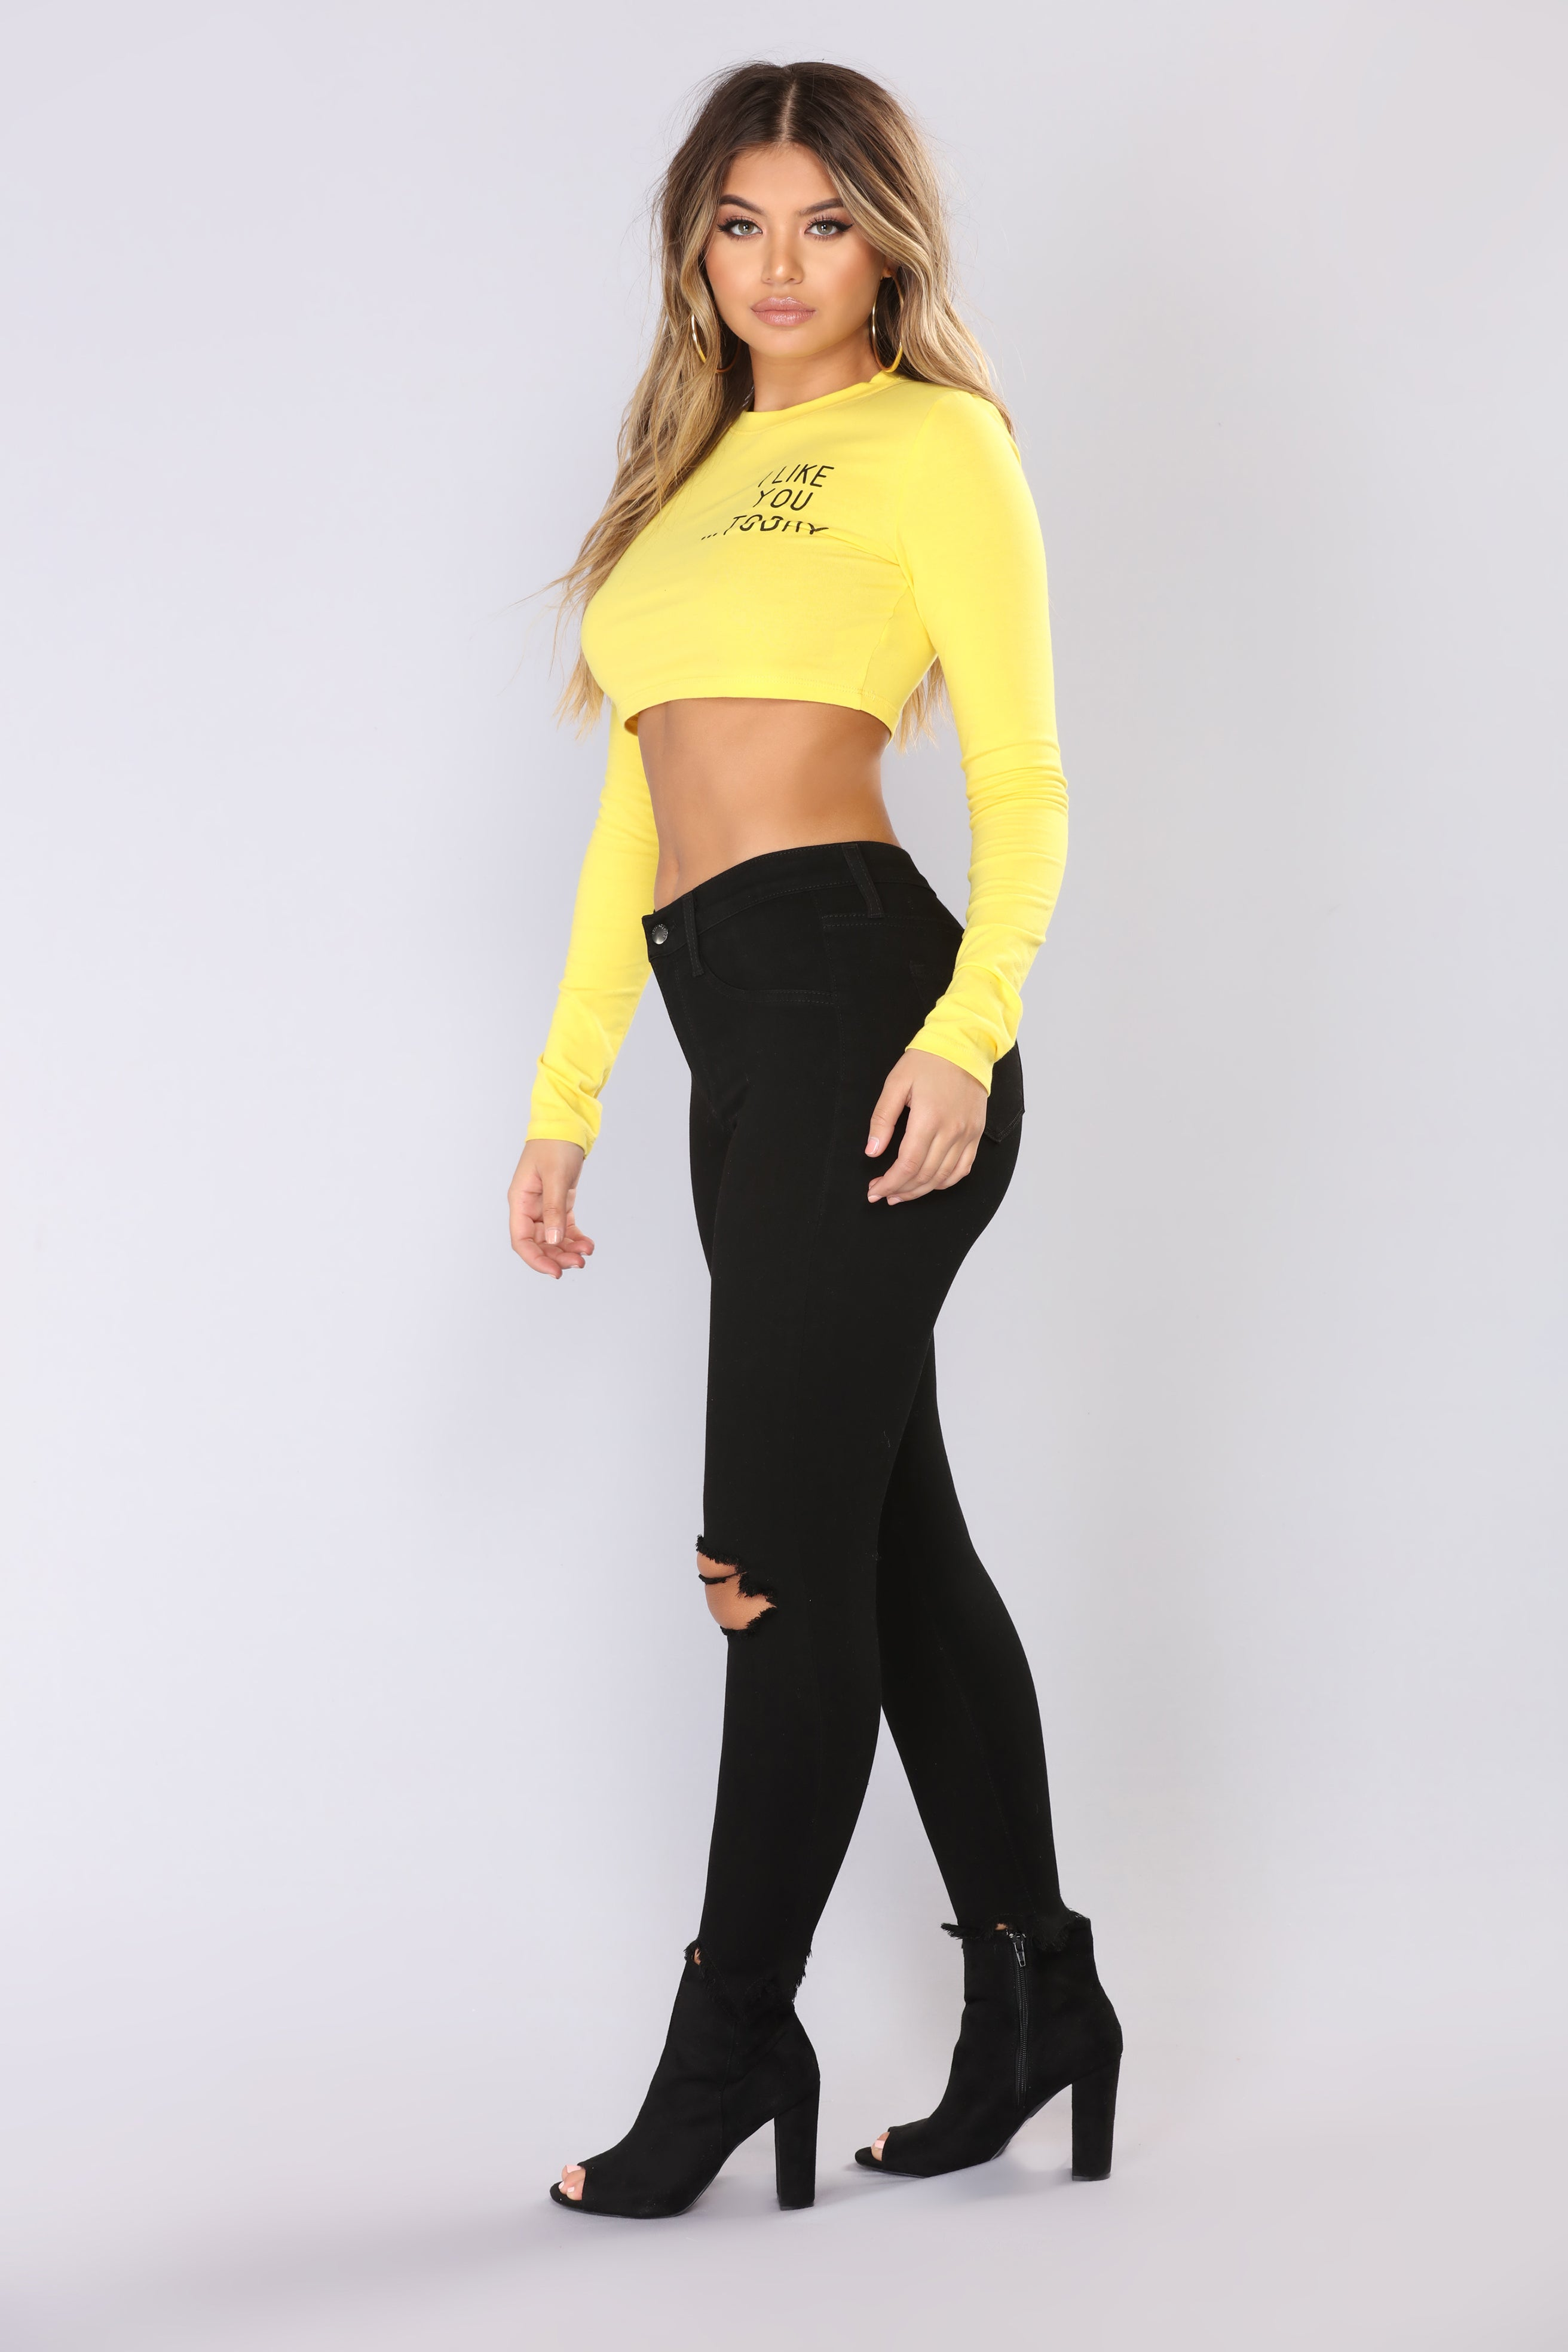 1a10c9e922418a I Like You Today Crop Top - Yellow Black